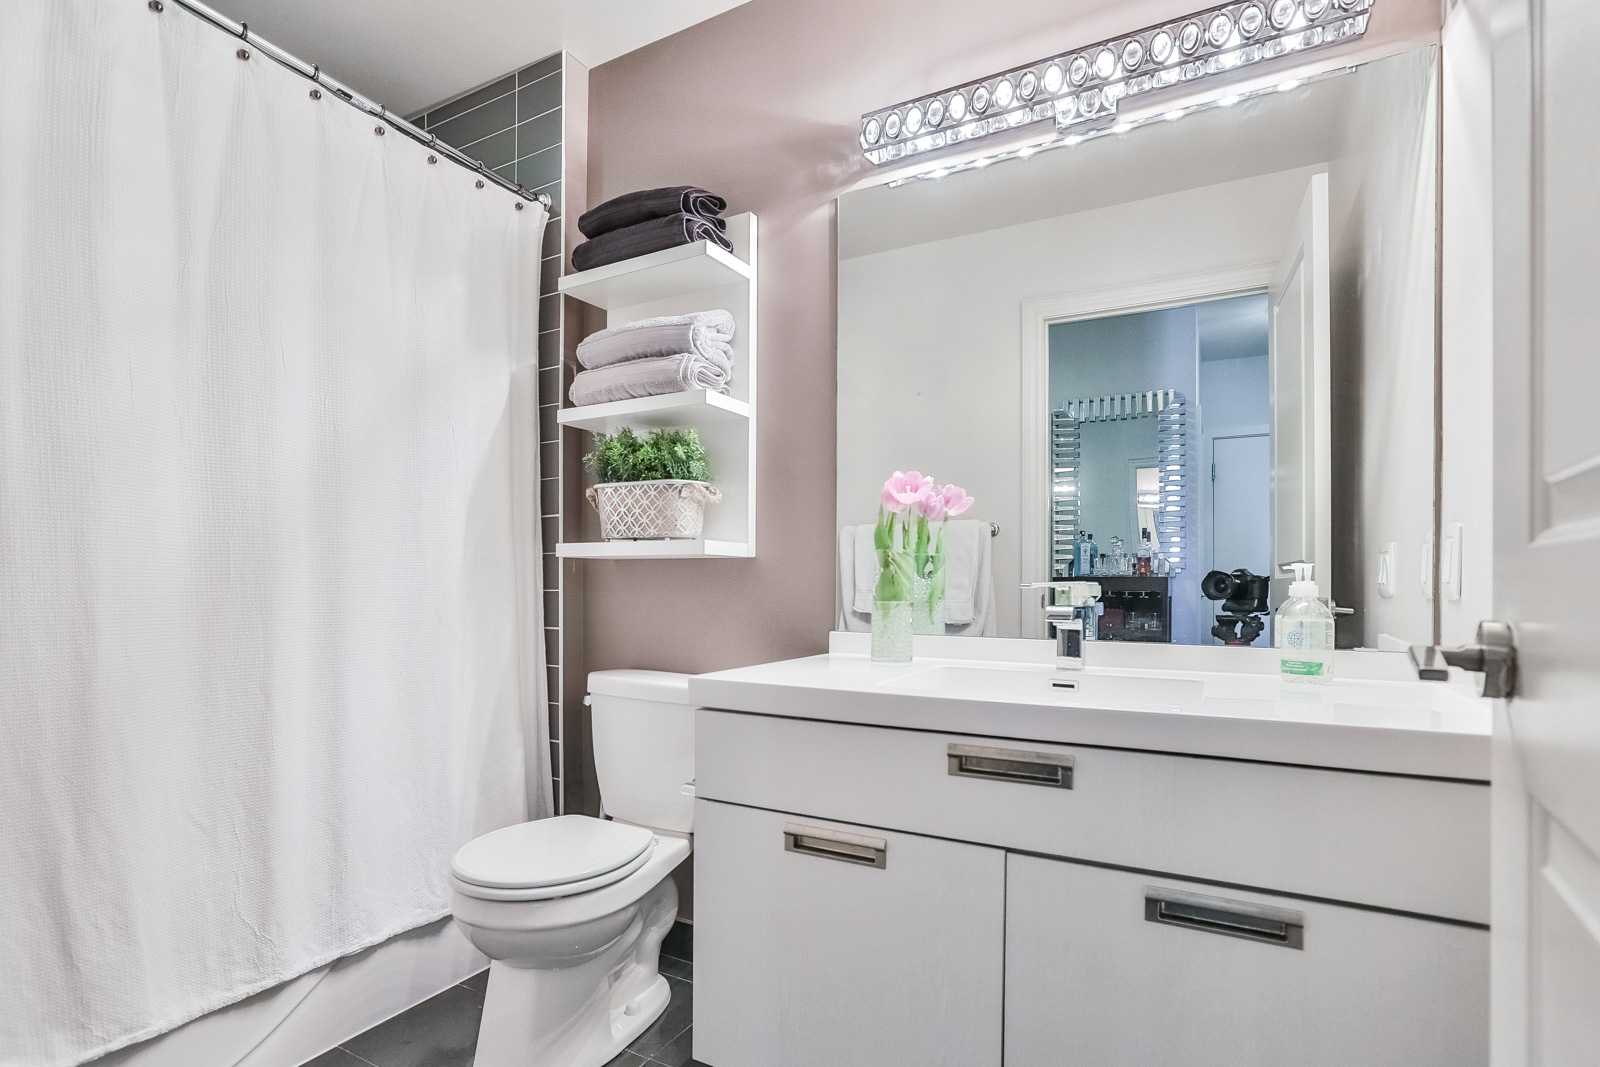 Image showing 28 Ted Rogers Way bathroom. It's rather simple yet beautiful.